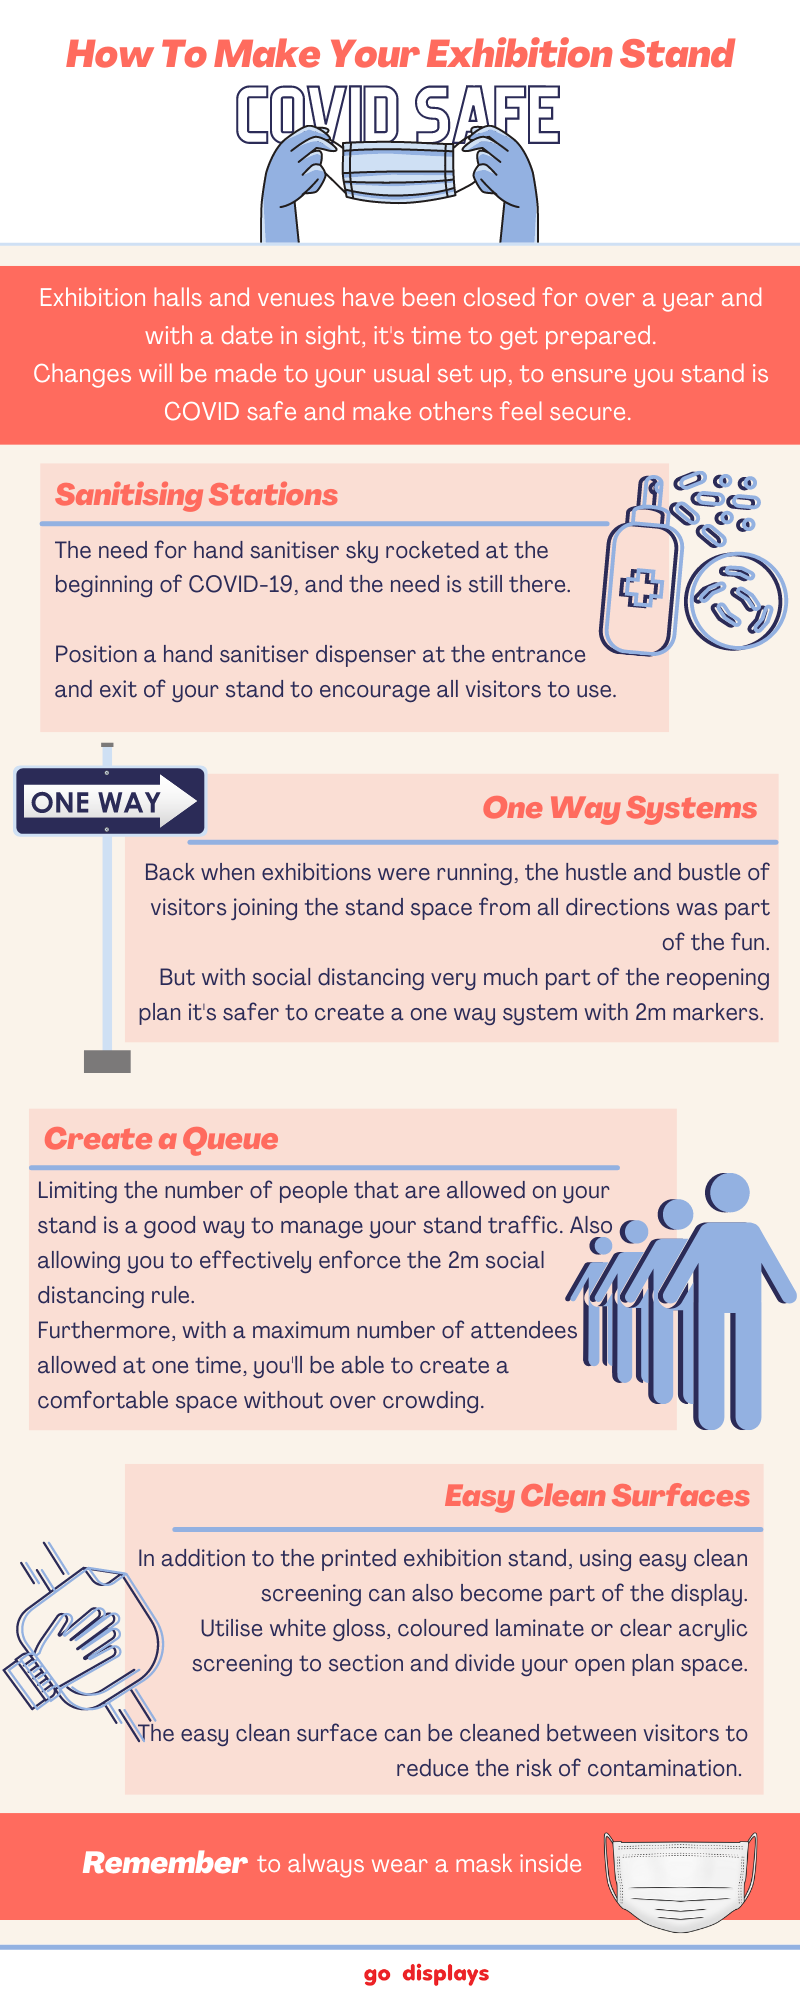 How To Make Your Exhibition Stand COVID Safe